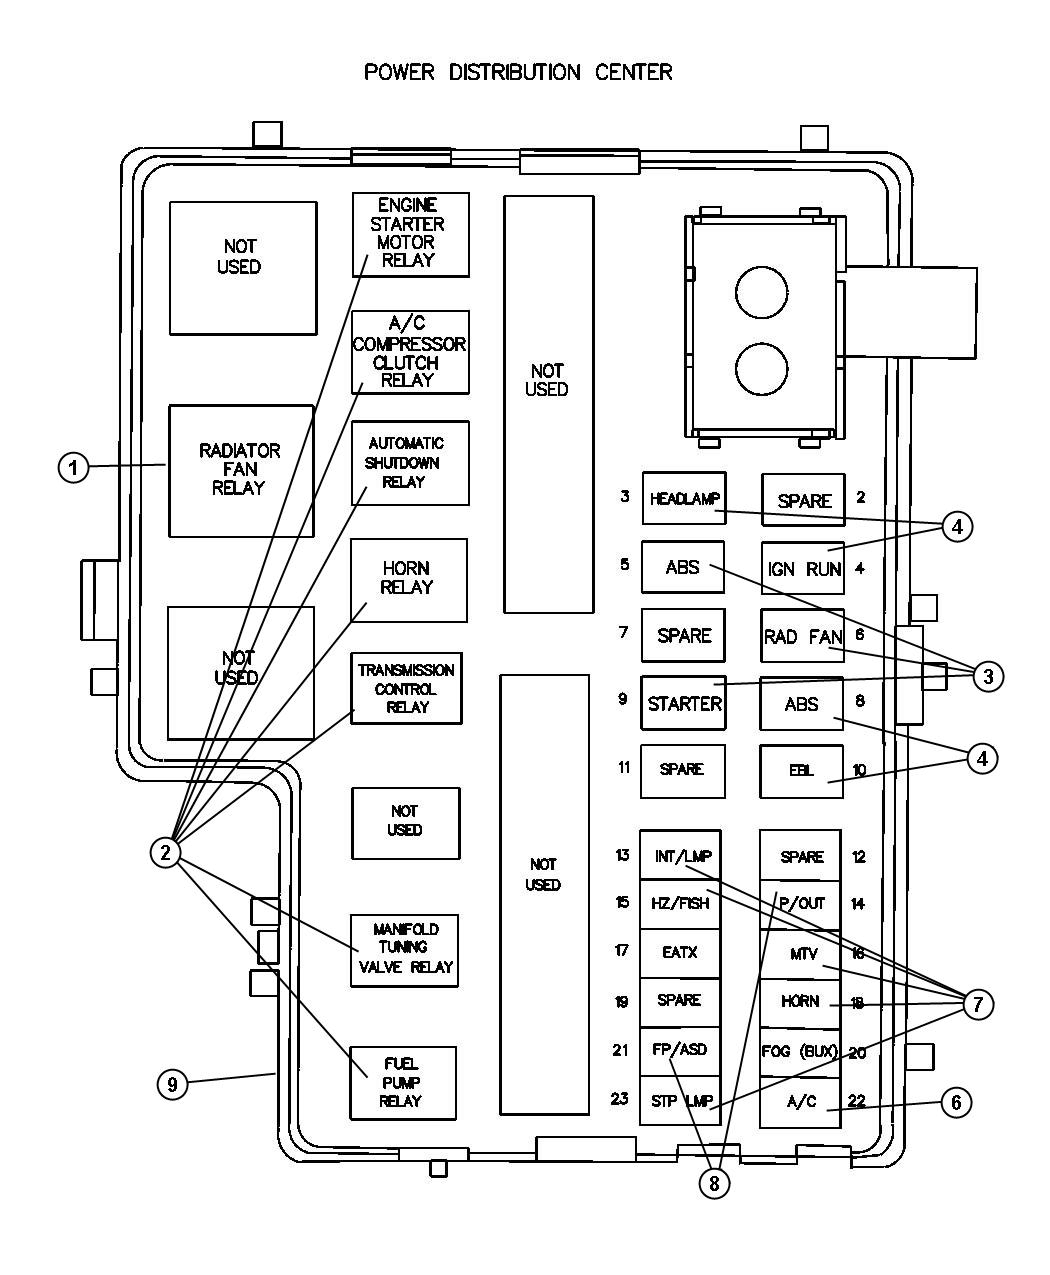 [DIAGRAM] 2004 Dodge Neon Srt Fuse Box Diagram FULL